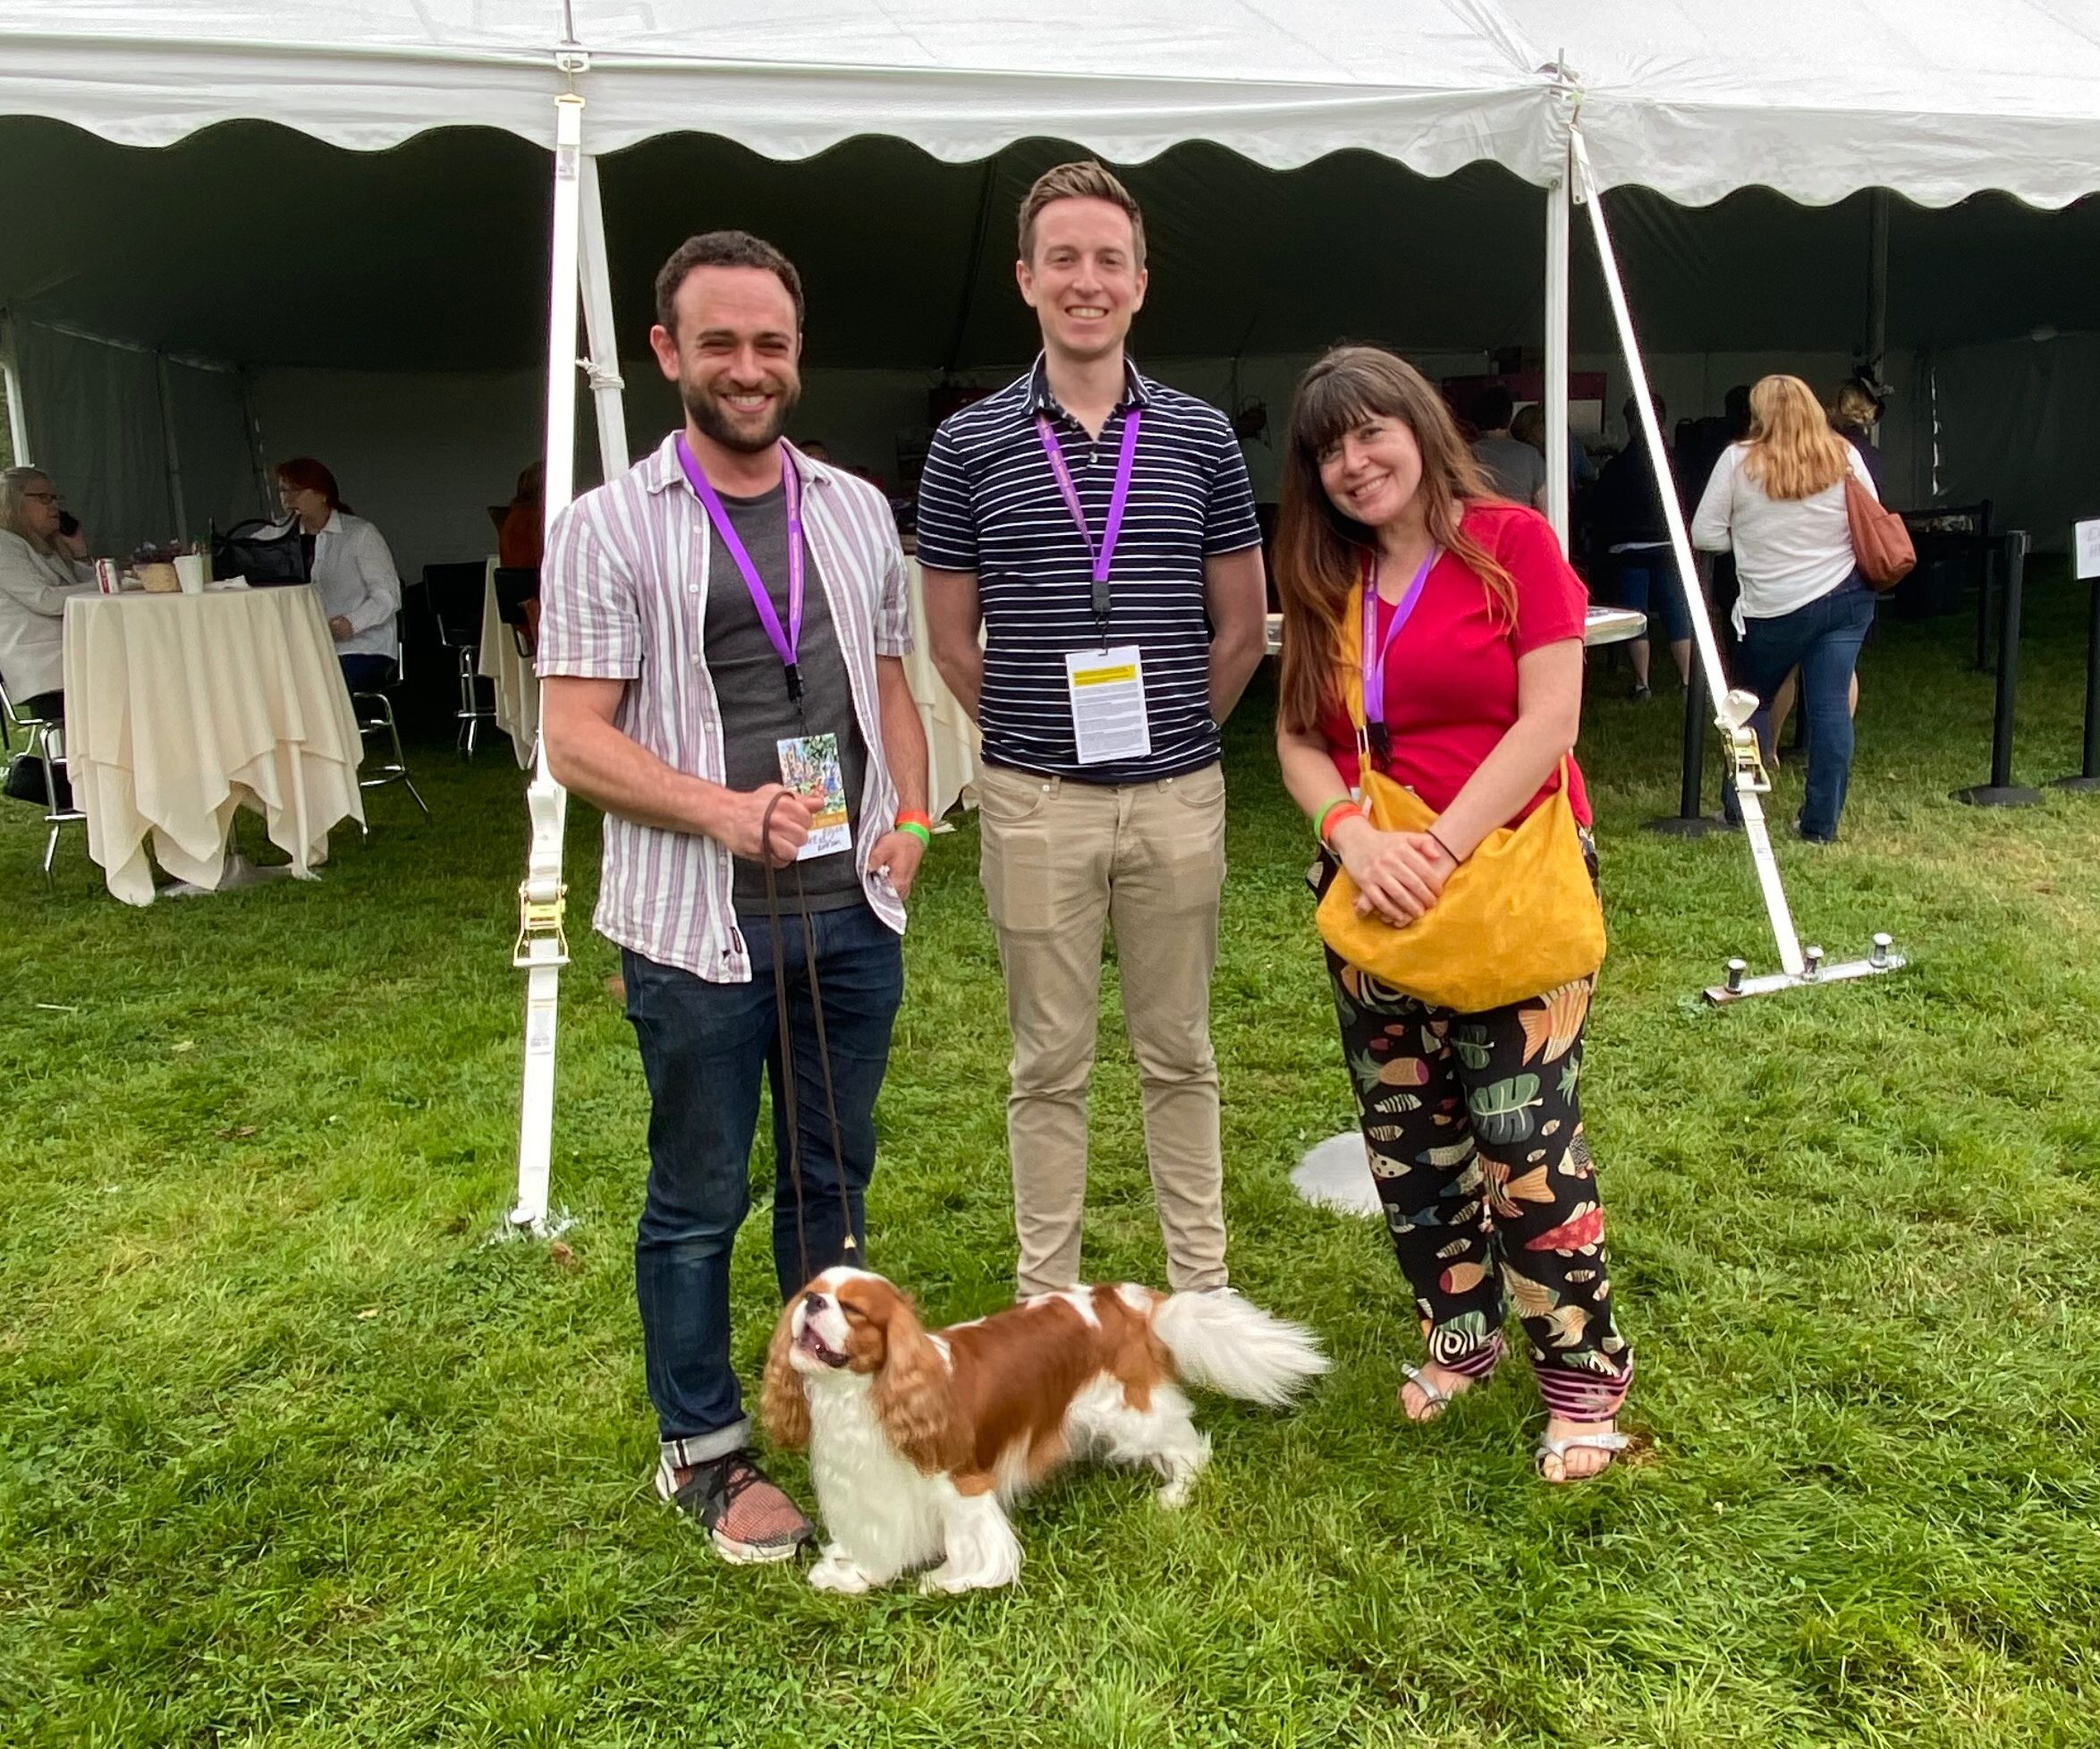 Clockwise, starting with the dog: Chester, the award-winning Cavalier King Charles Spaniel; Elijah Wolfson, TIME editor; Joey Lautrup, TIME video producer; Sarah Todd, Quartz journalist.